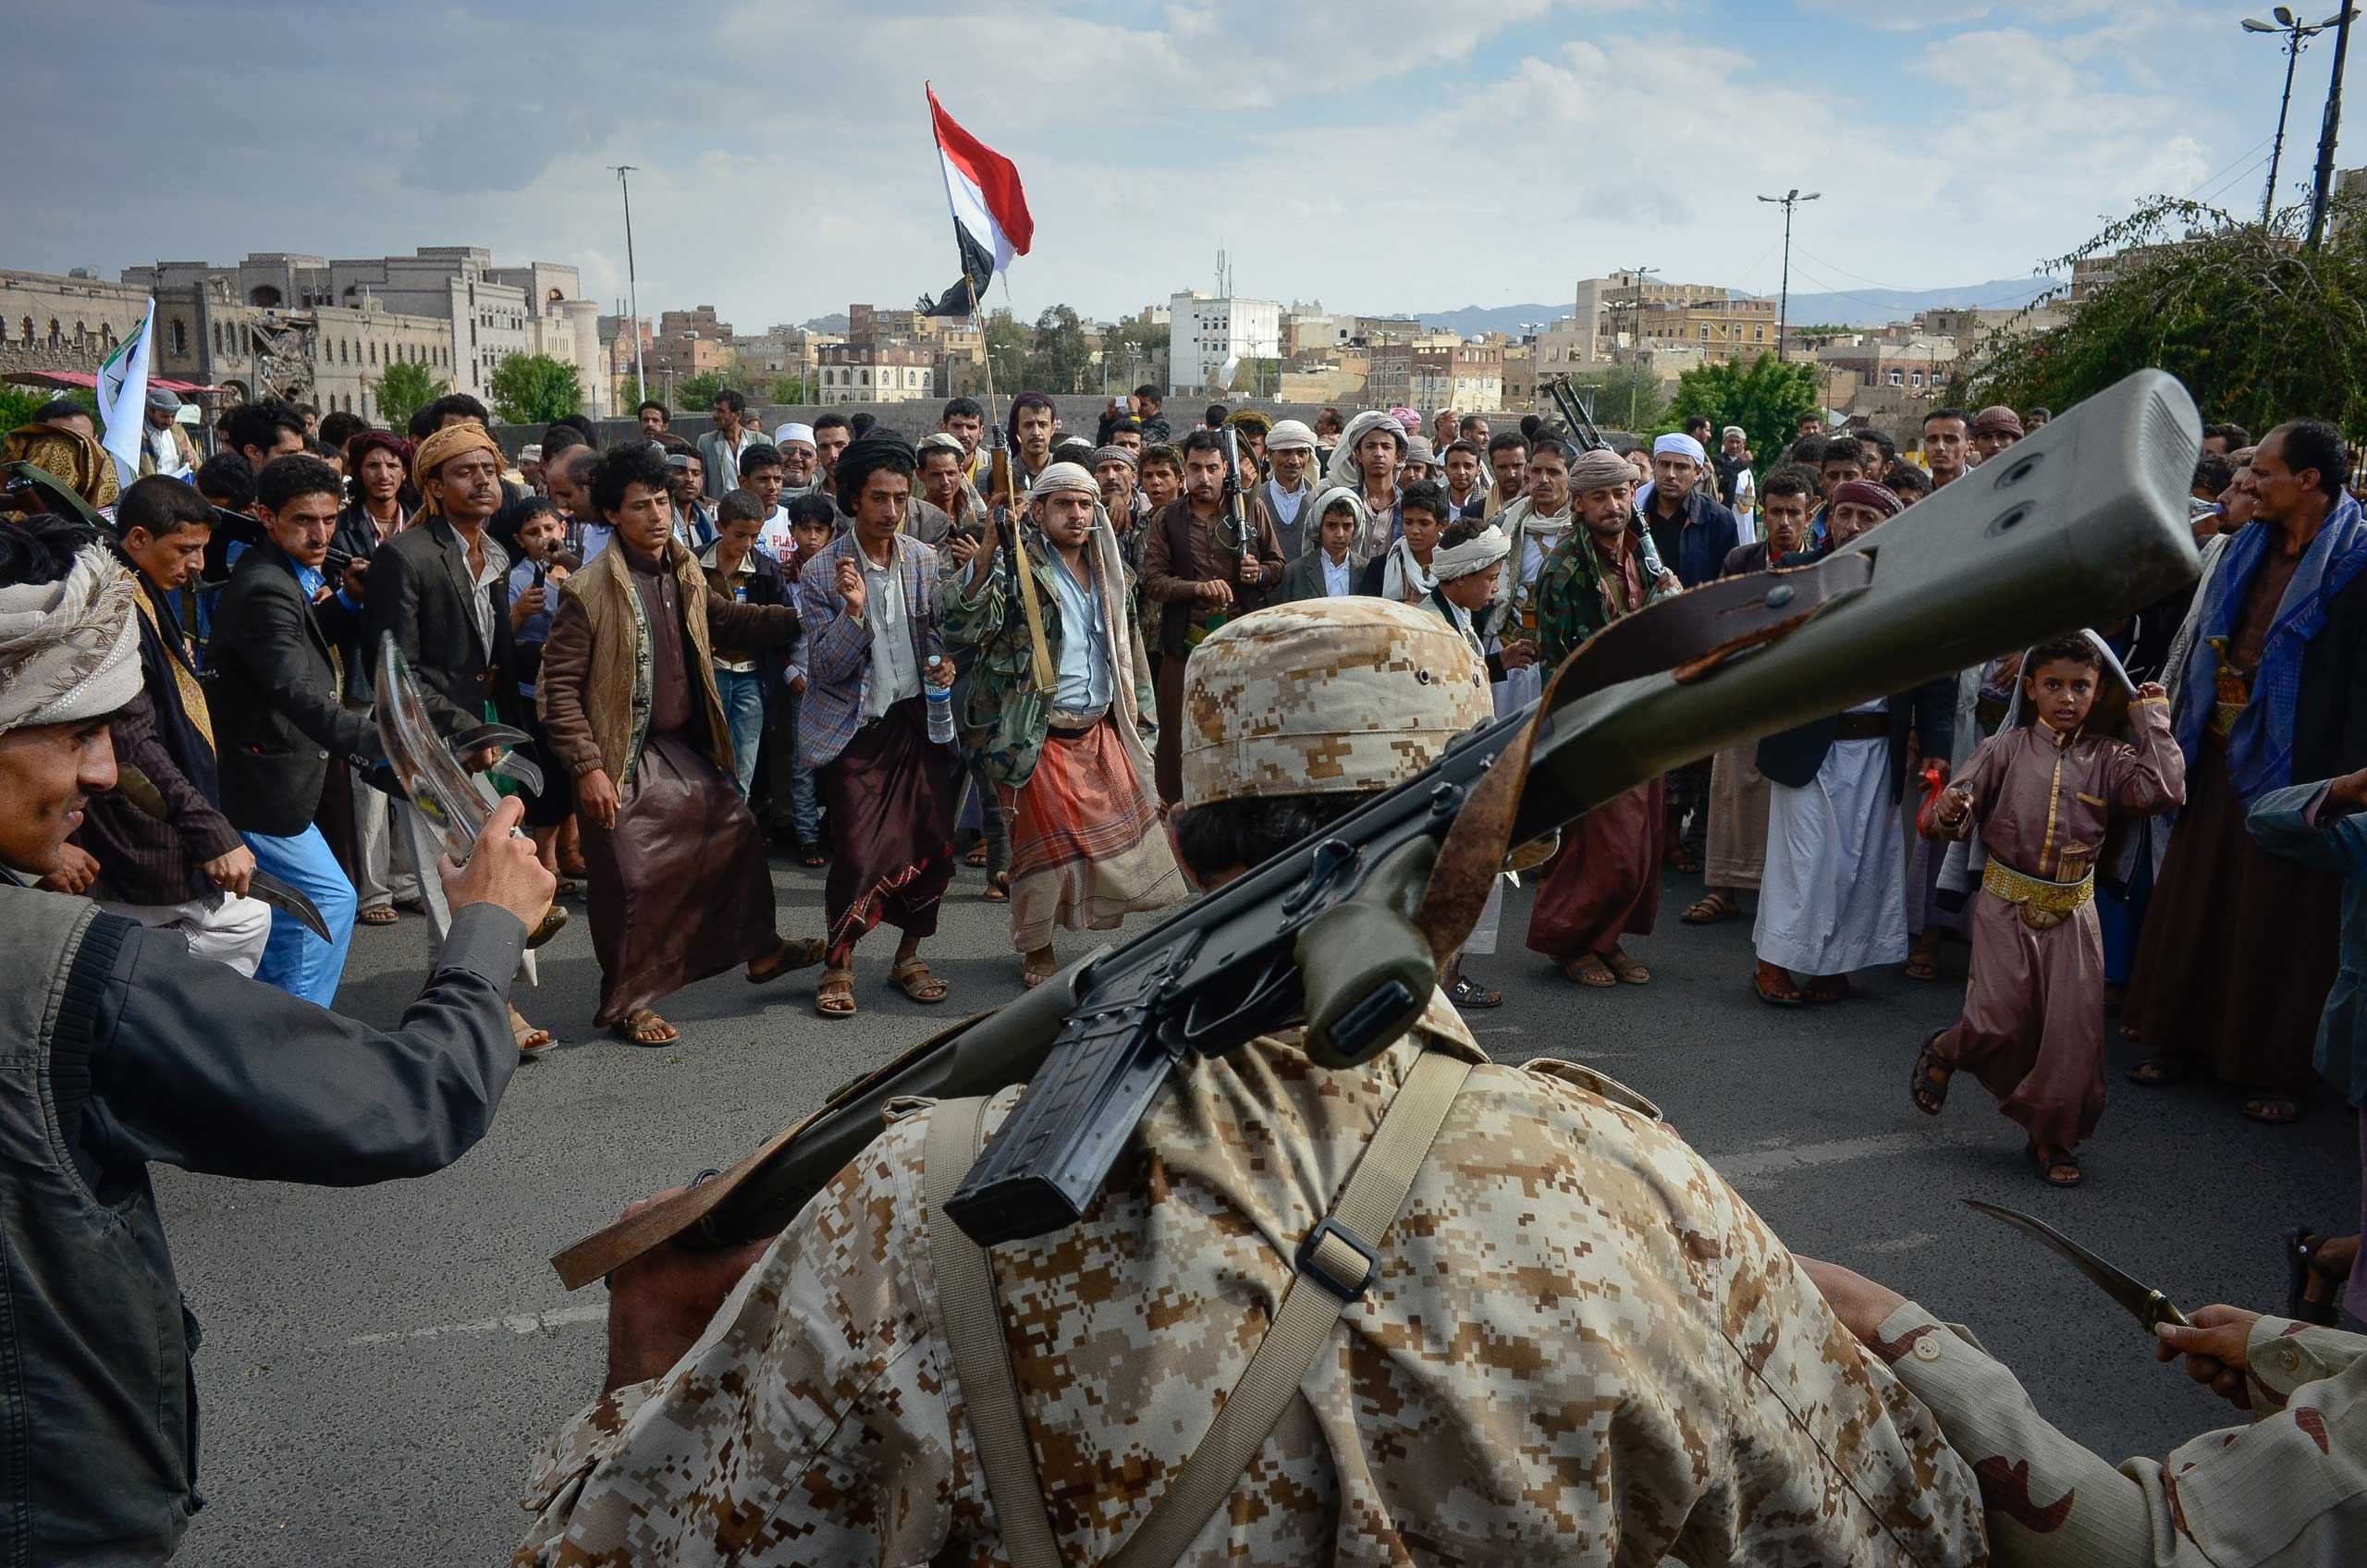 Houthi militants perform a traditional   dance of war called Baraa, during a rally in Sanaa, Yemen, Aug. 24, 2015.